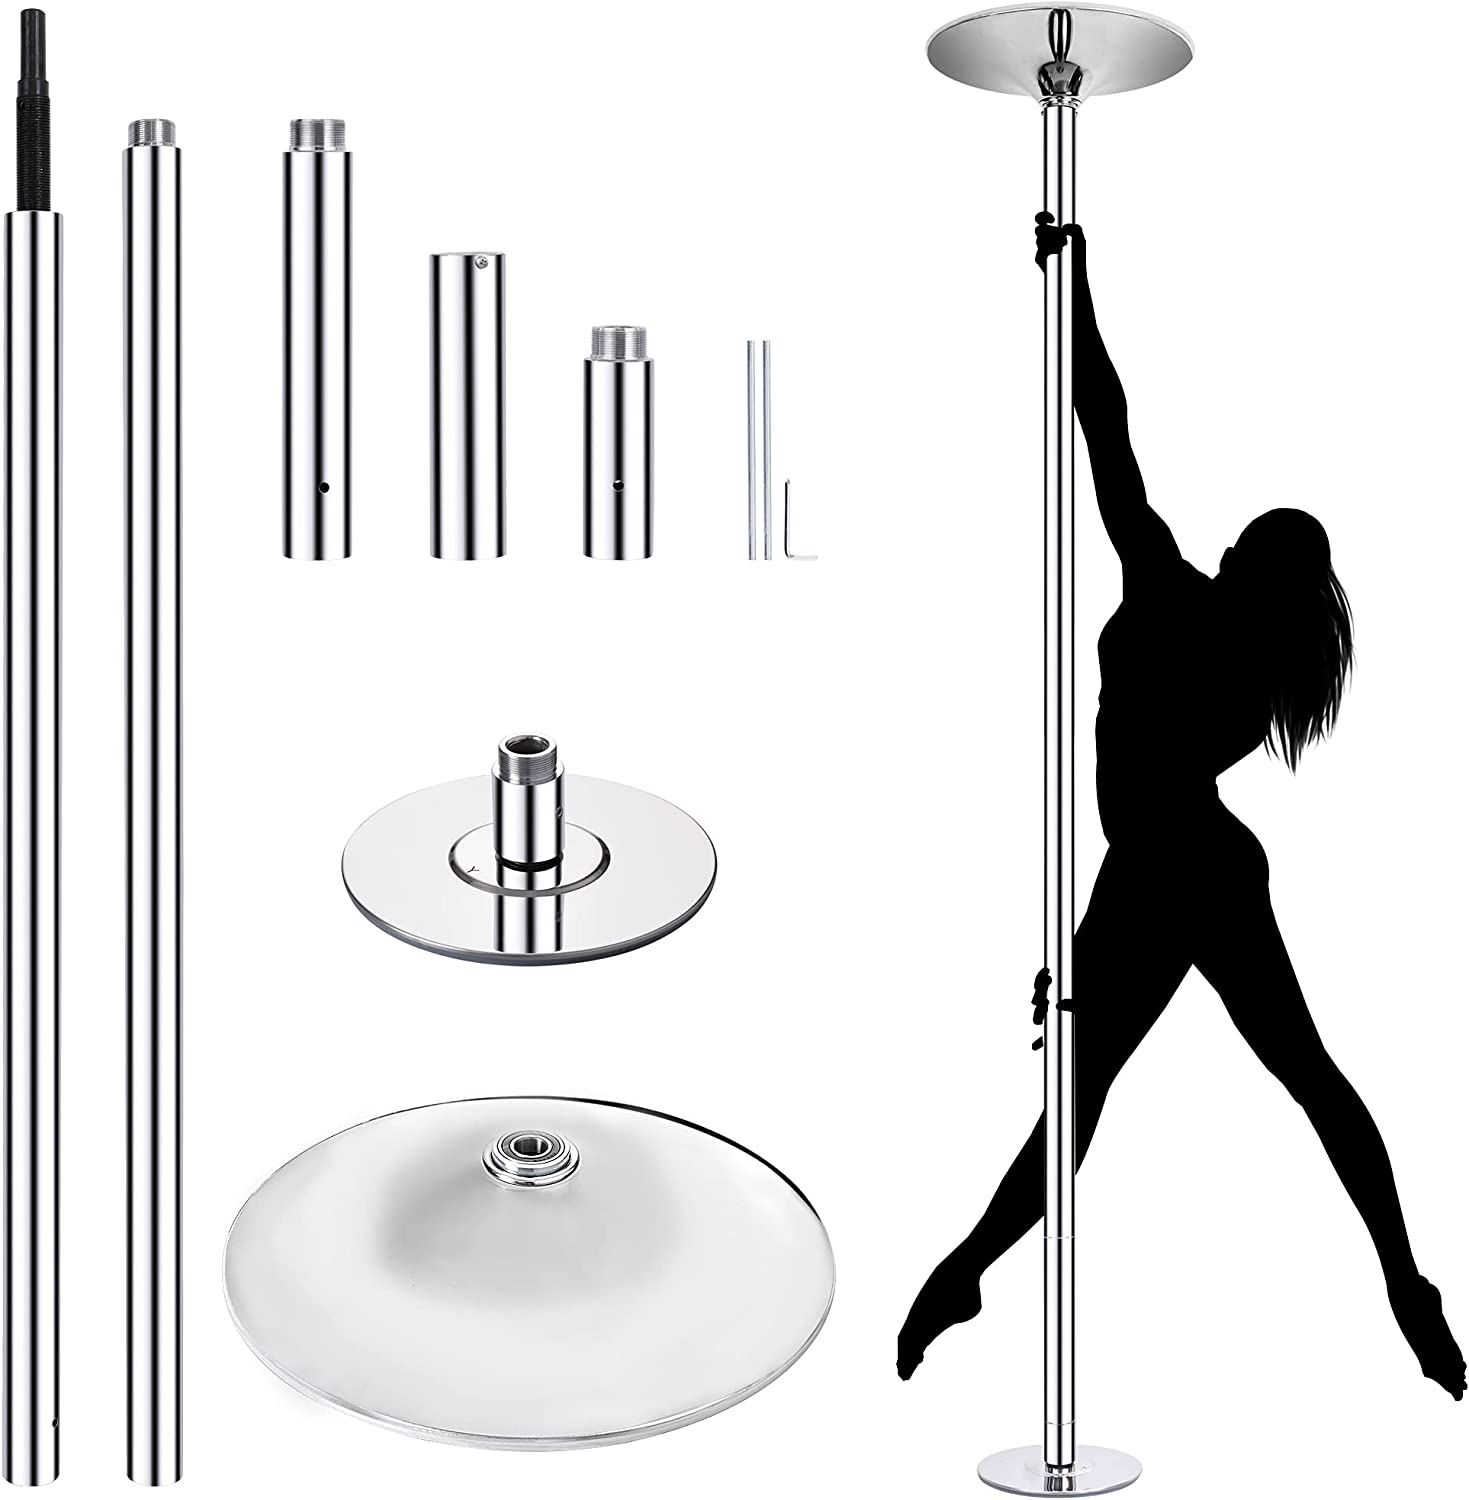 Trigoo Portable Spinning Stripper Dance Pole for Home Gym Party Pub Fitness